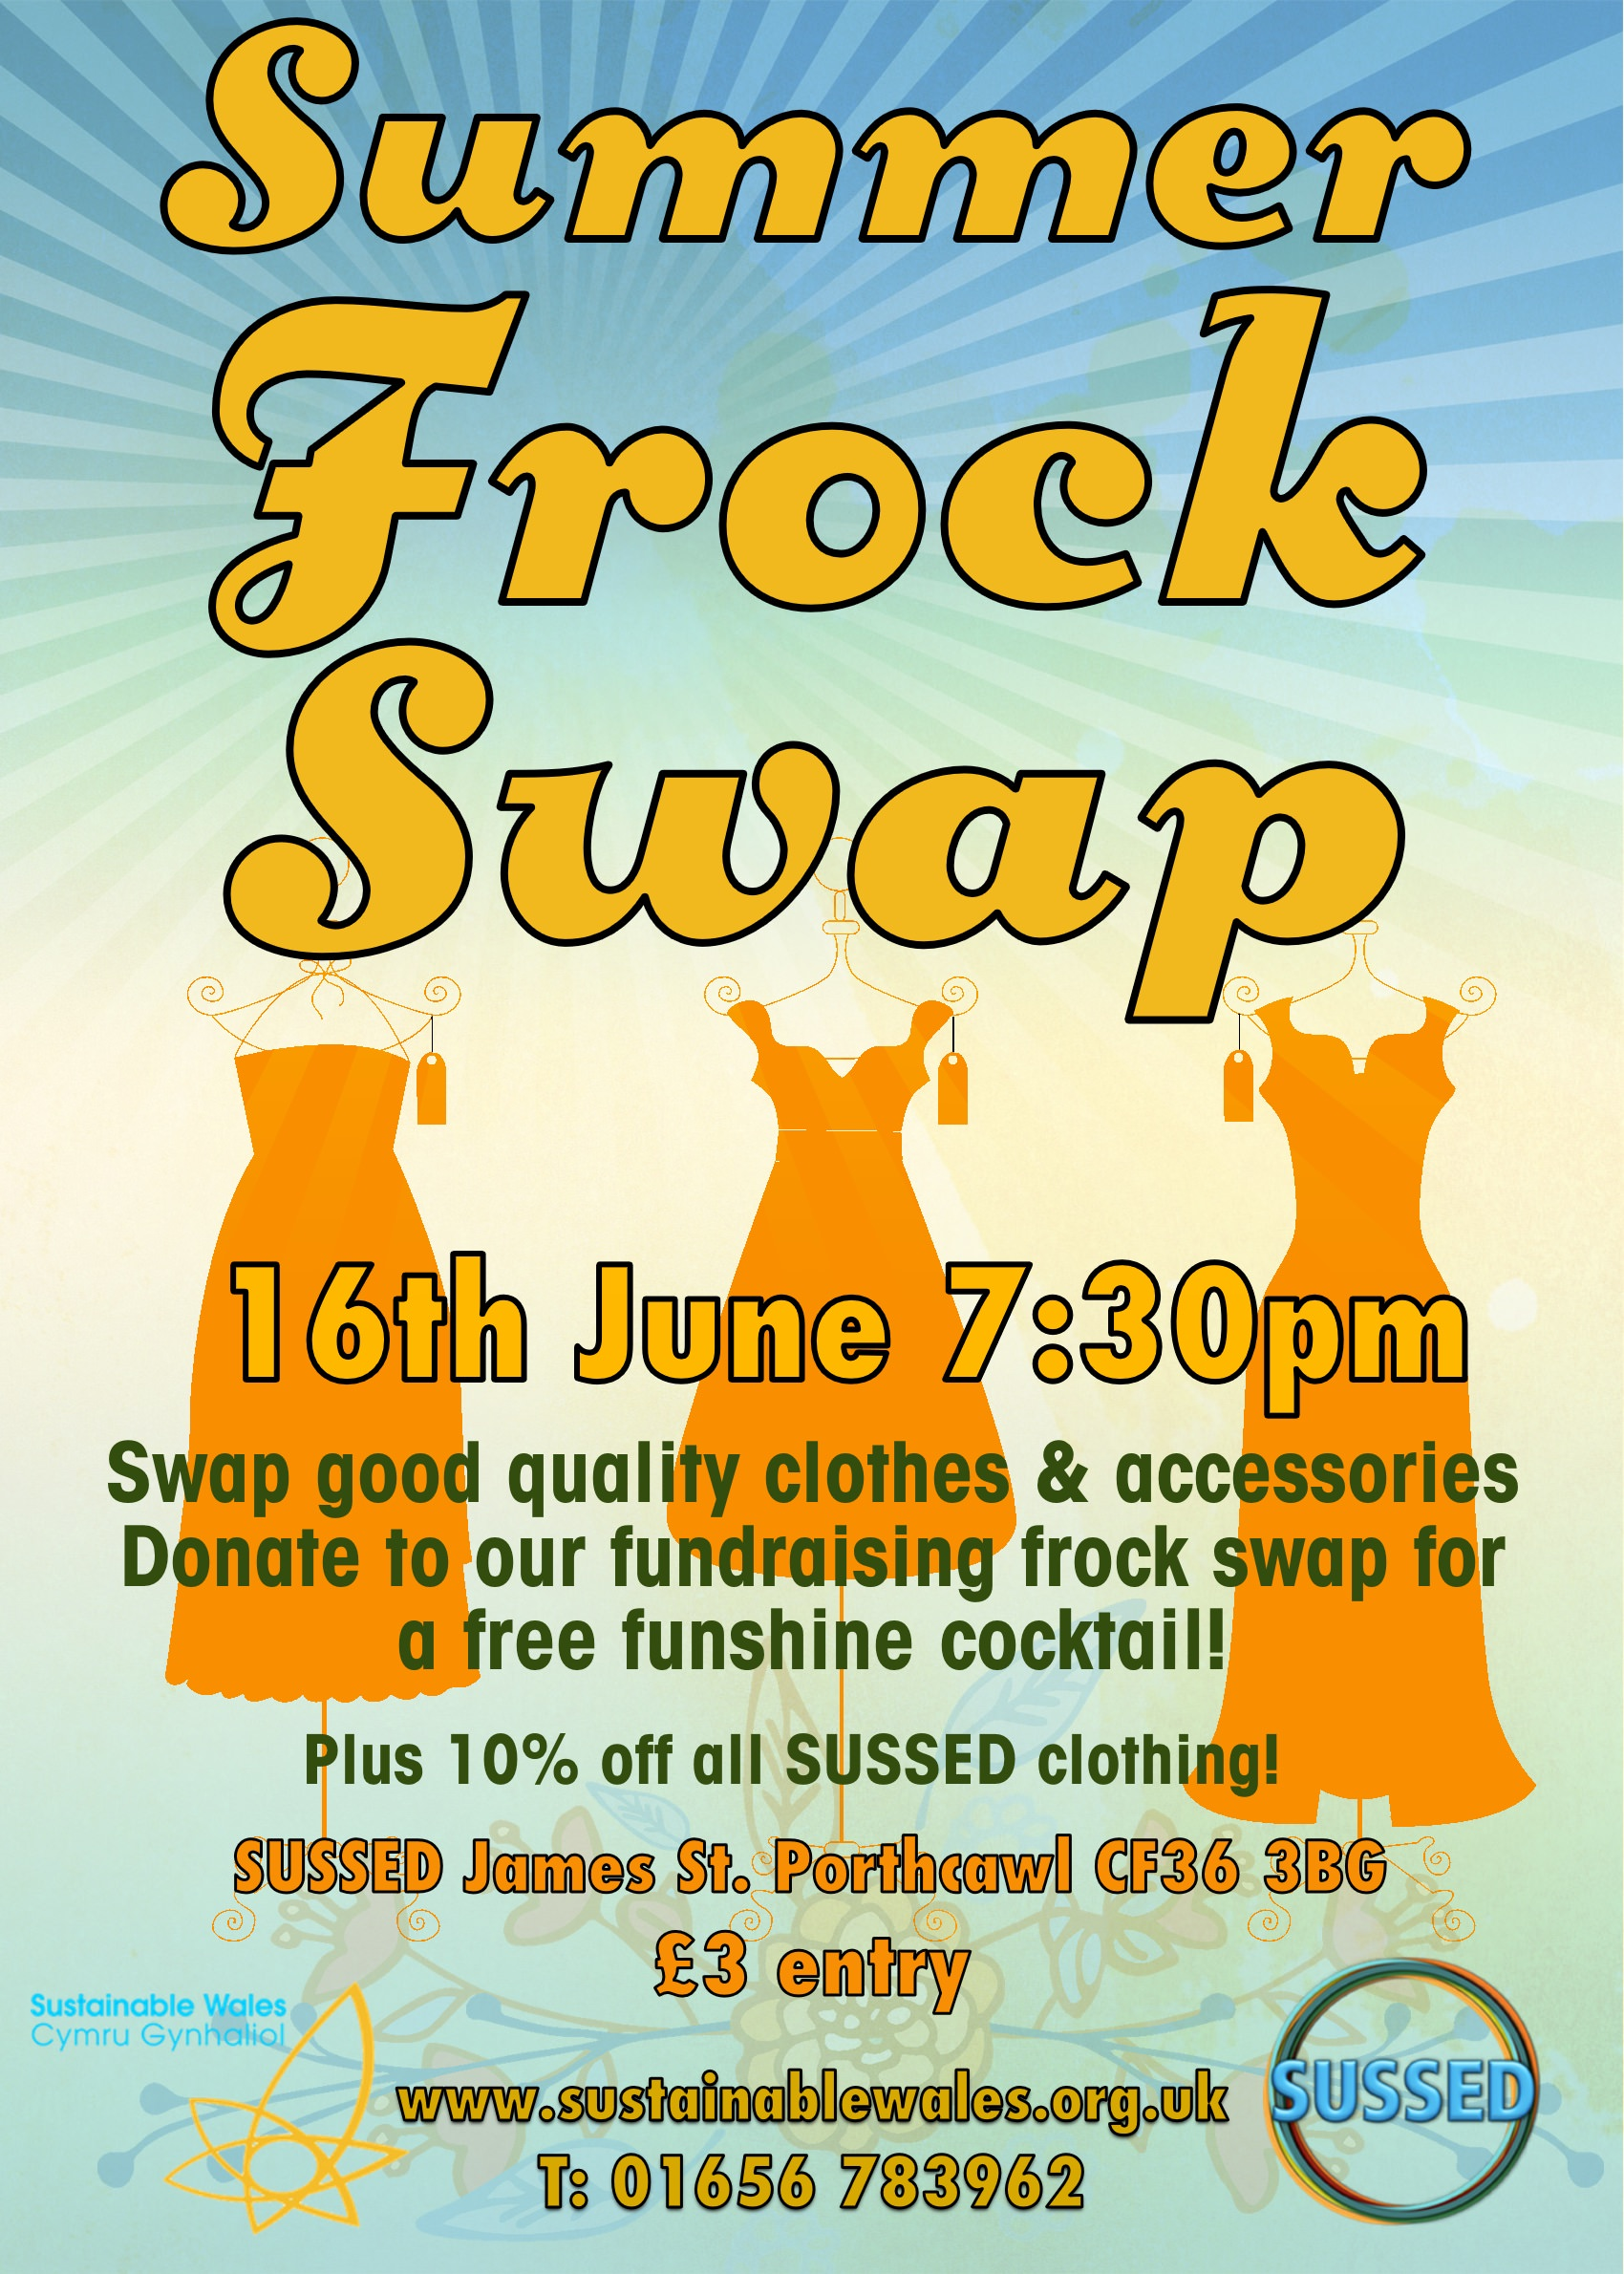 summer 2016 frock swap poster Simple.jpg